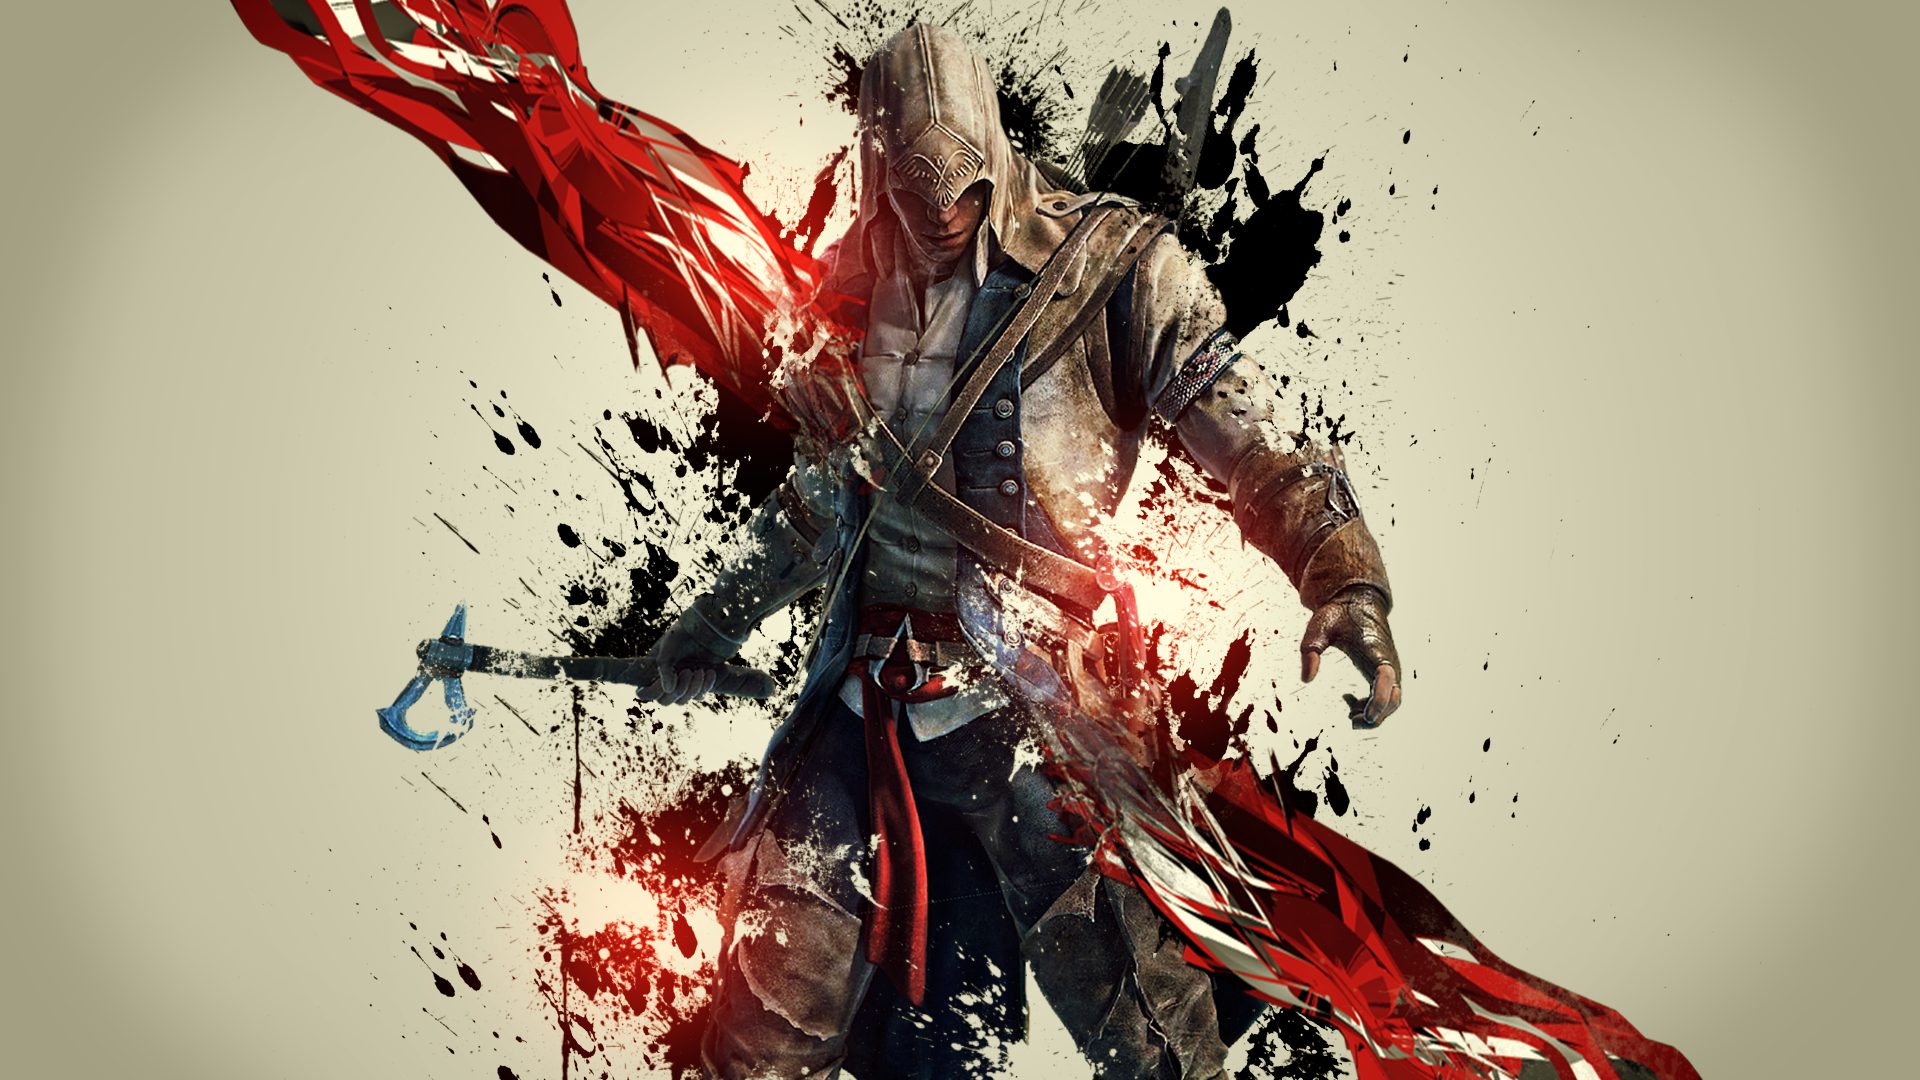 Check out our 914 Assassins Creed Wallpapers and Backgrounds and 1920x1080